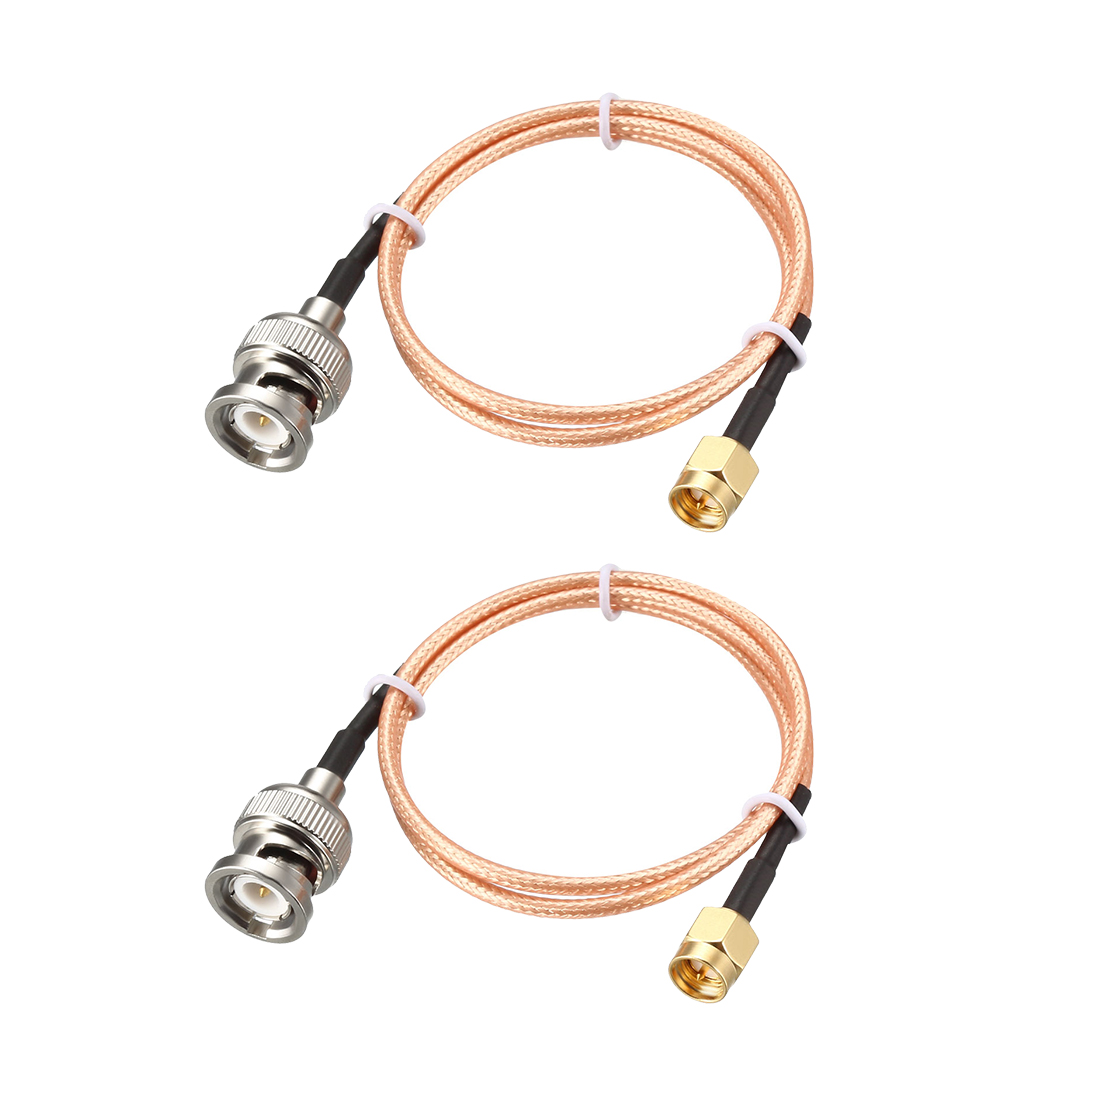 RG316 Coaxial Cable with BNC Male to SMA Male Connectors 50 Ohm 1.5 Feet 2pcs